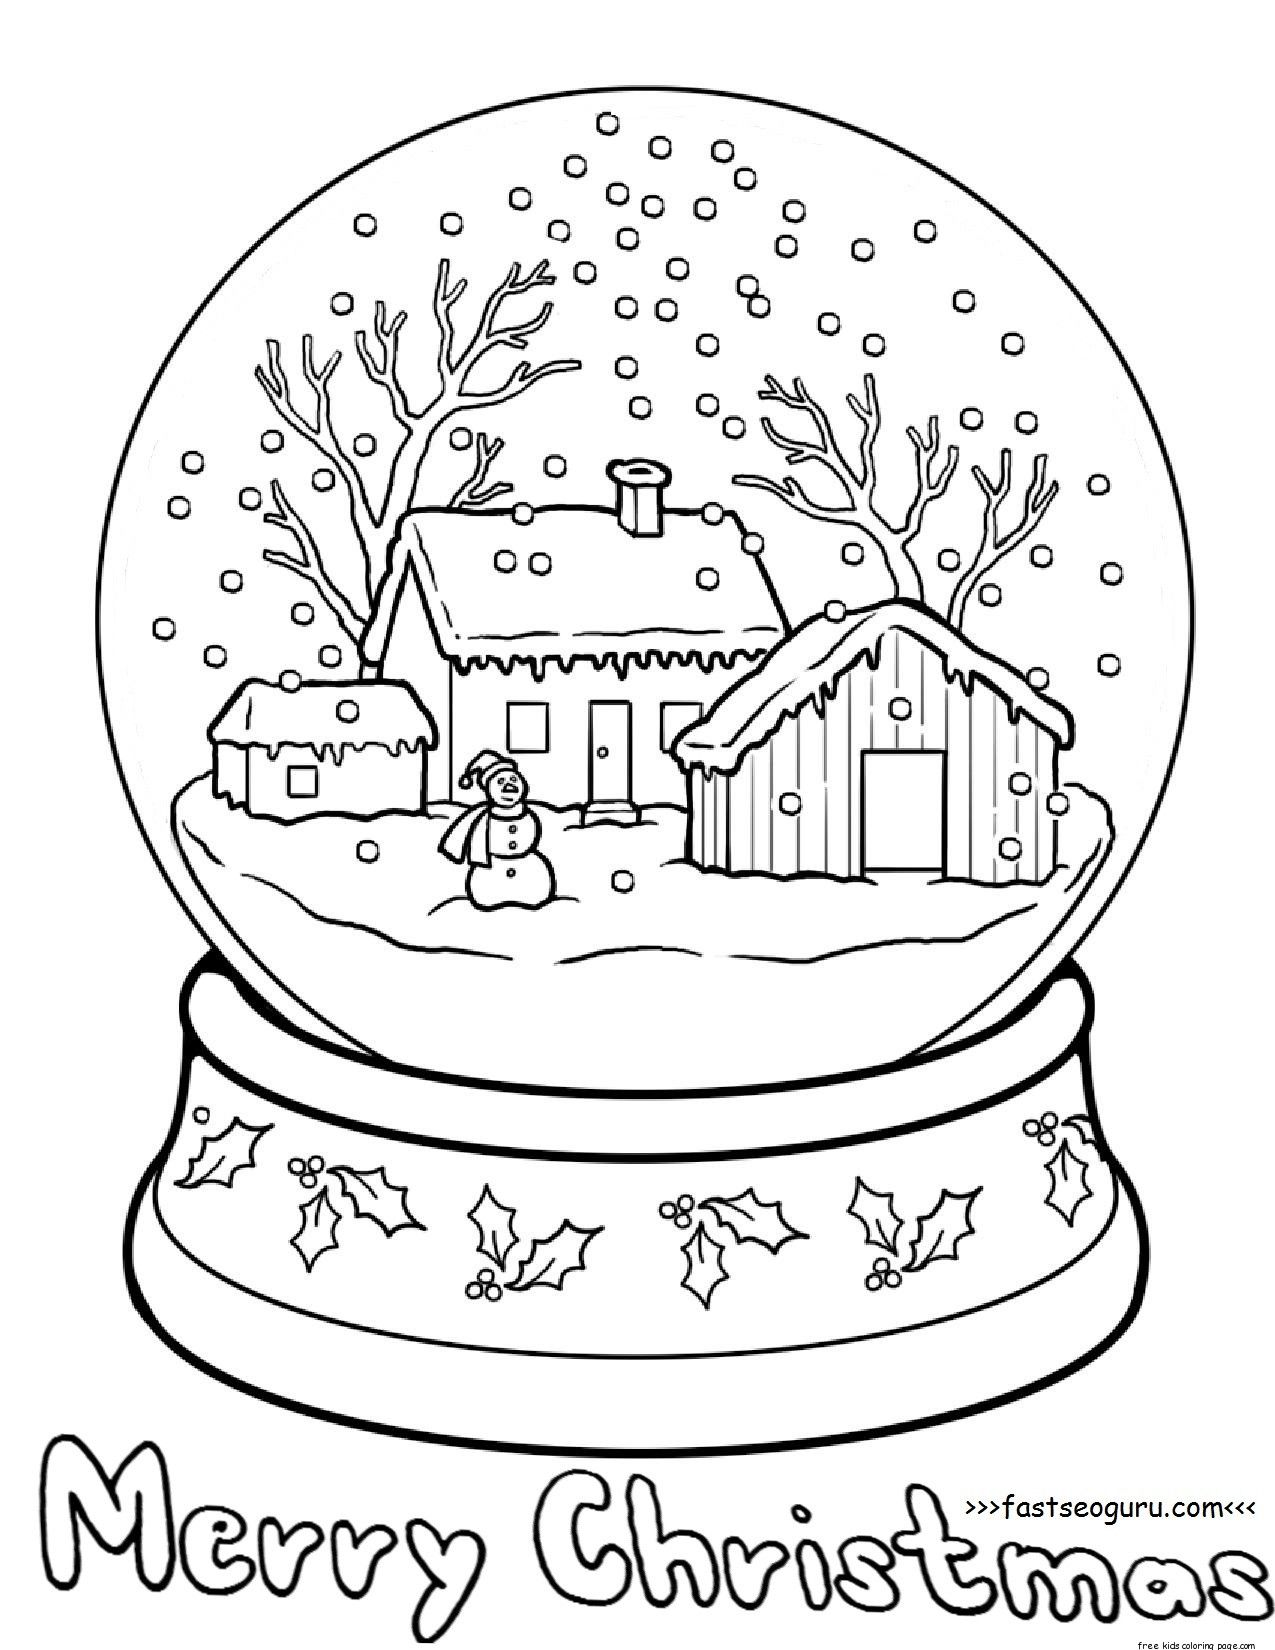 globe coloring page cmscorpion Coloring pages Pinterest